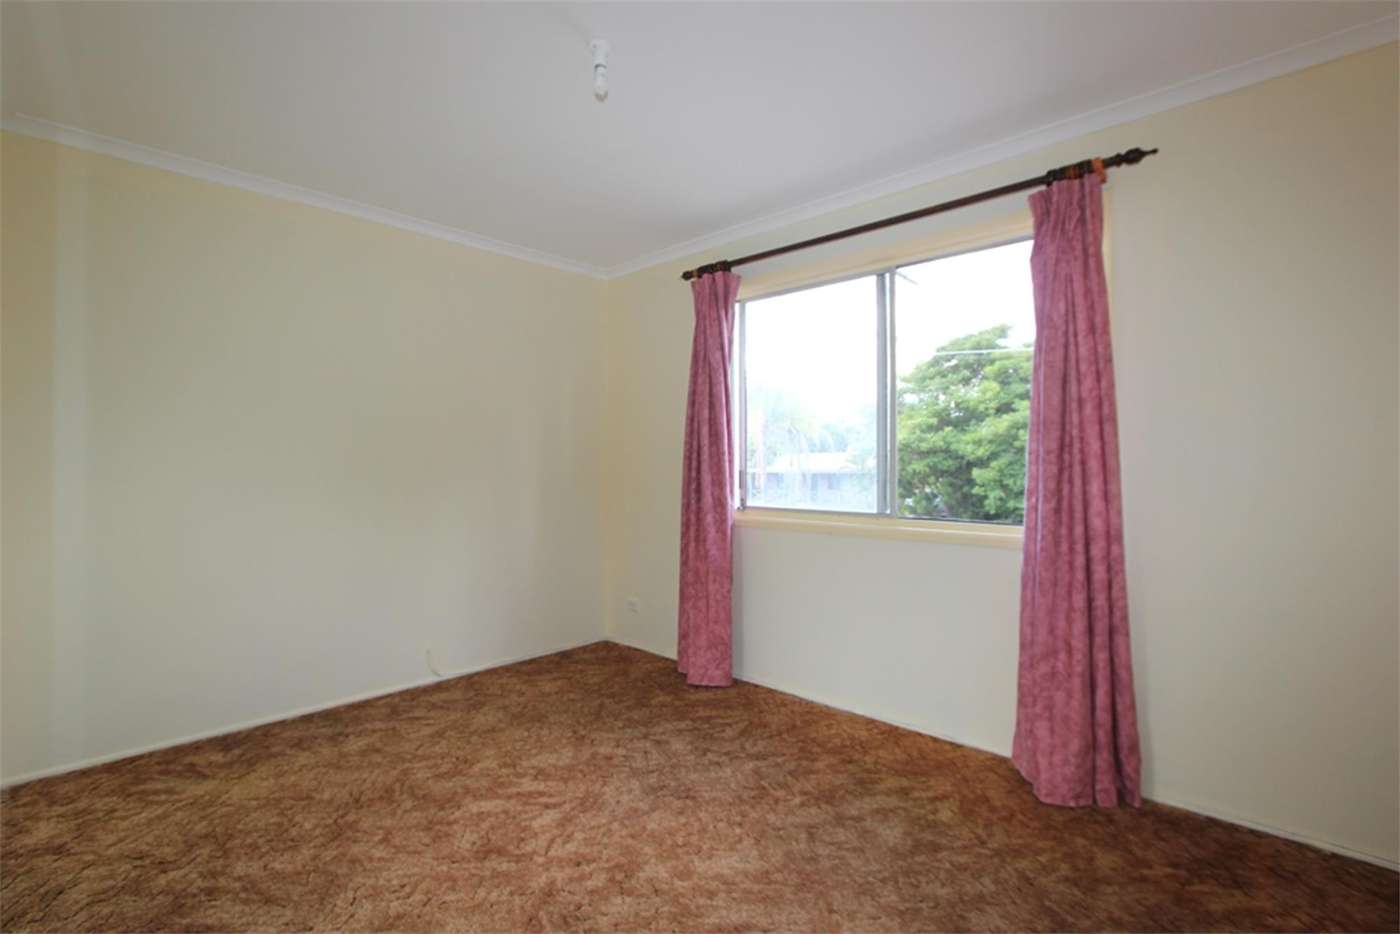 Seventh view of Homely house listing, 11 Barakee Street, Crestmead QLD 4132